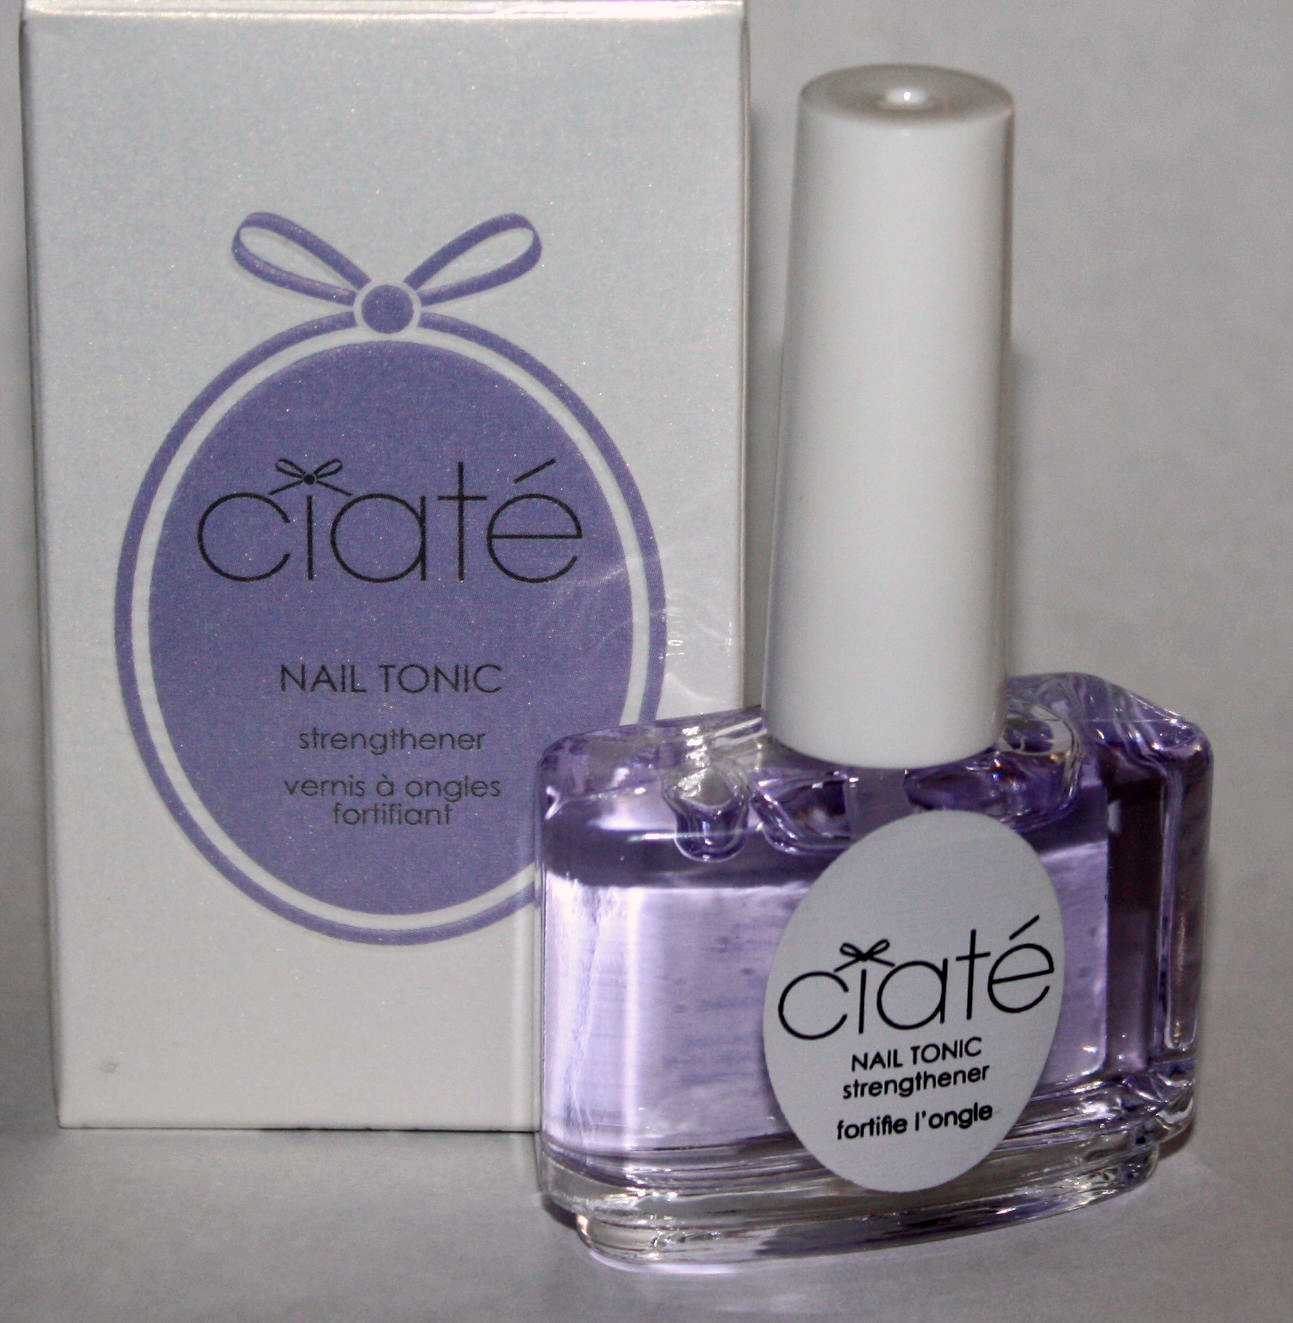 Ciate Nail Tonic Nail Strengthener 0.46 oz 14434